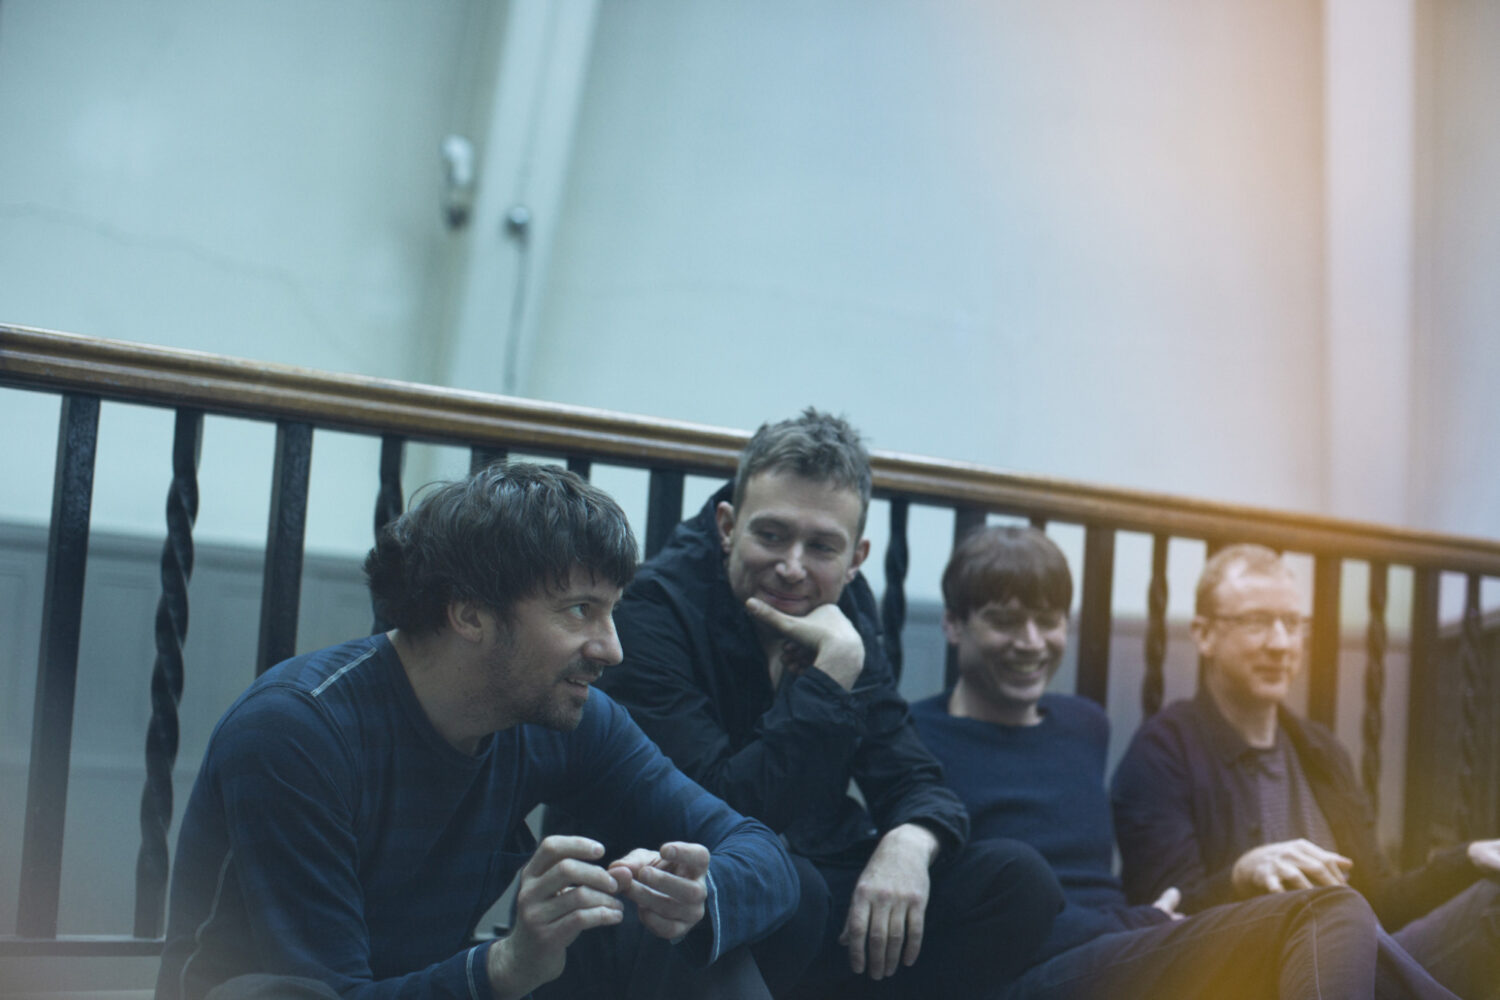 Blur are back! New album 'The Magic Whip' due this April